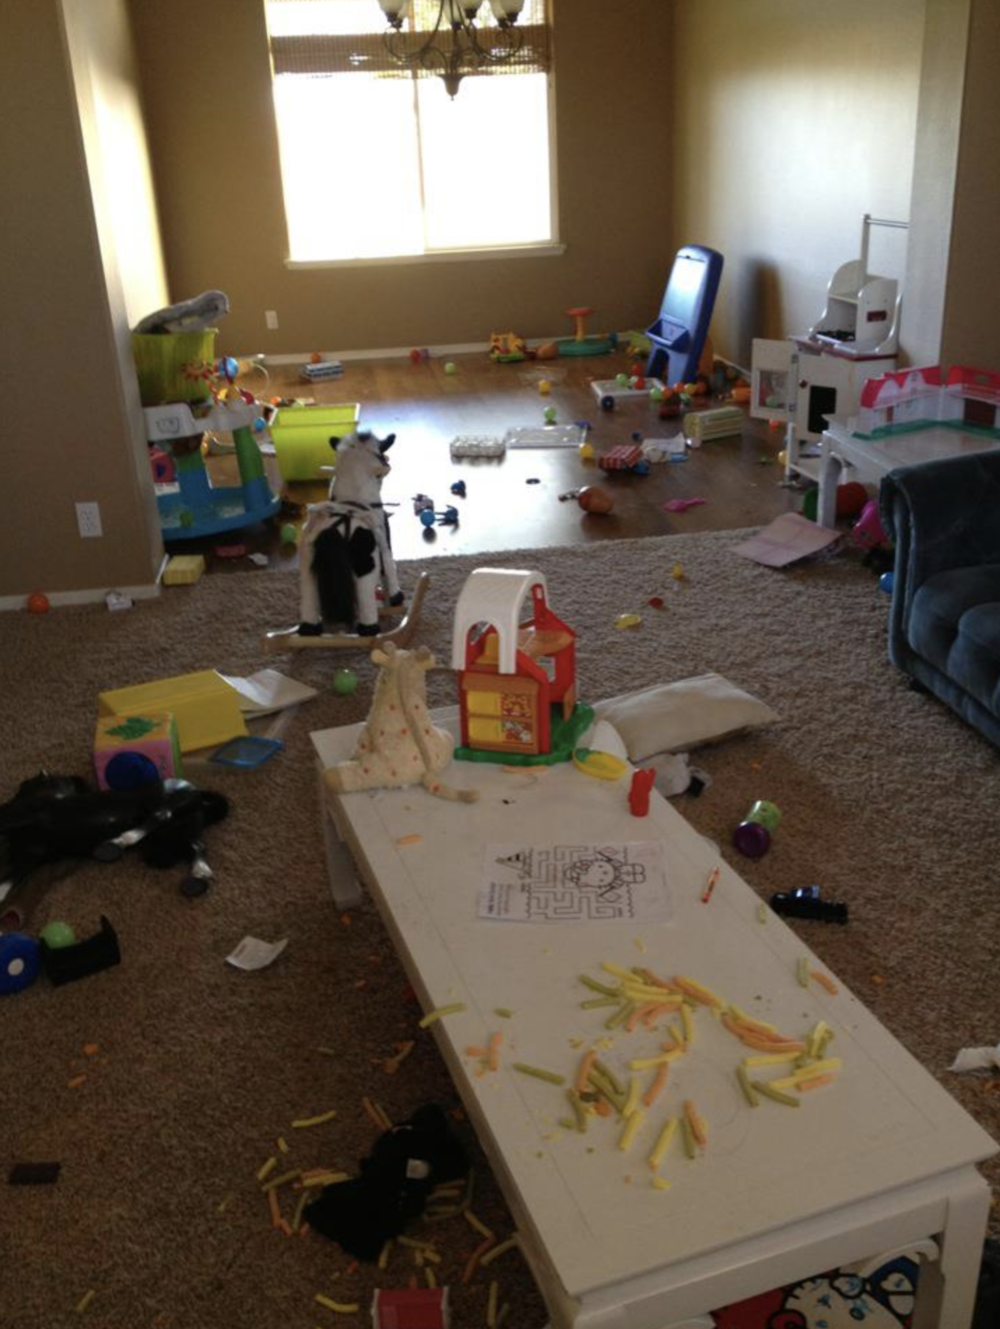 This is our actual playroom at the time. This is humbling...